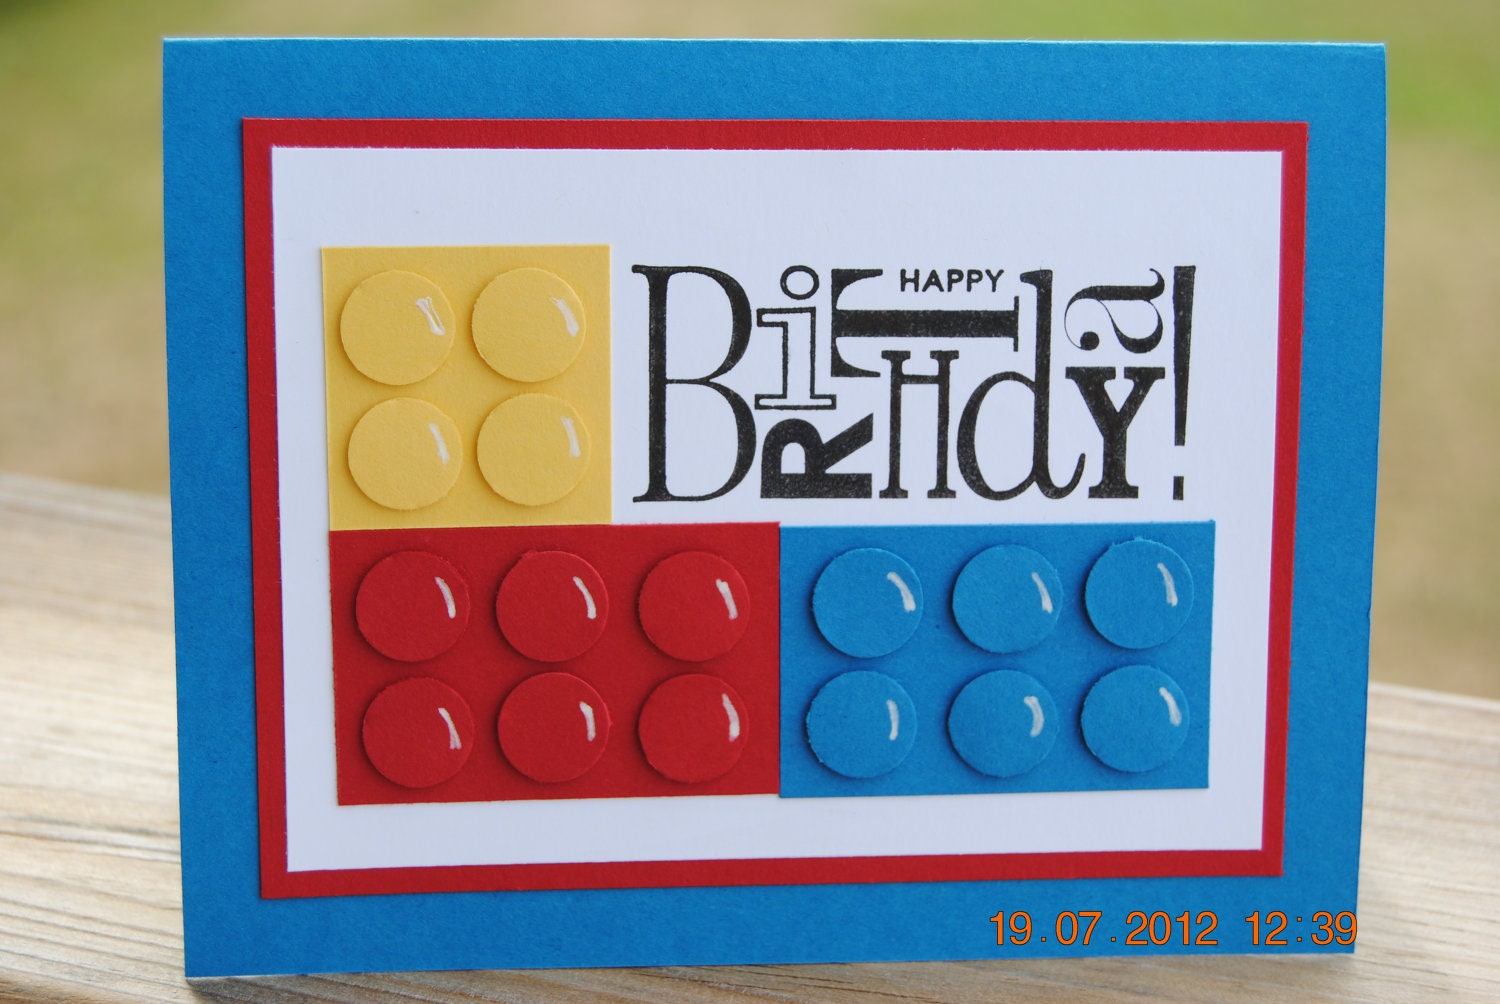 Lego Birthday Invitation Cards Friend Nicole S Lego Birthday – Lego Birthday Card